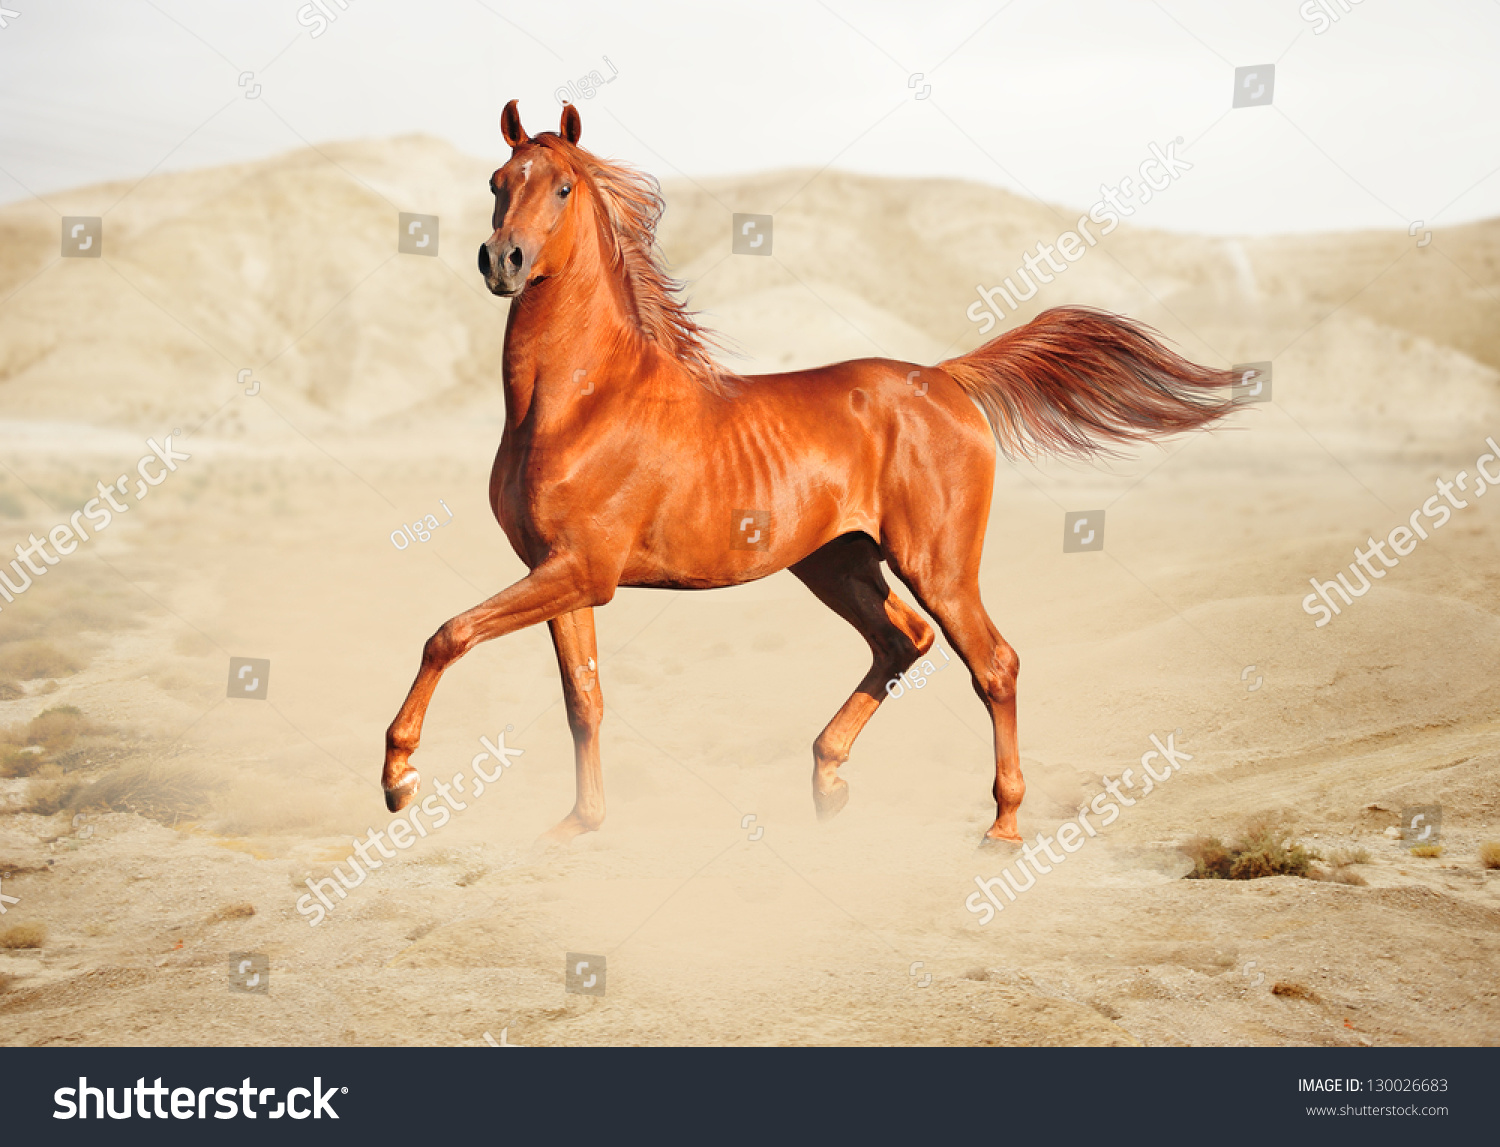 Purebred White Arabian Horse Desert Stock Photo 130026683 ...